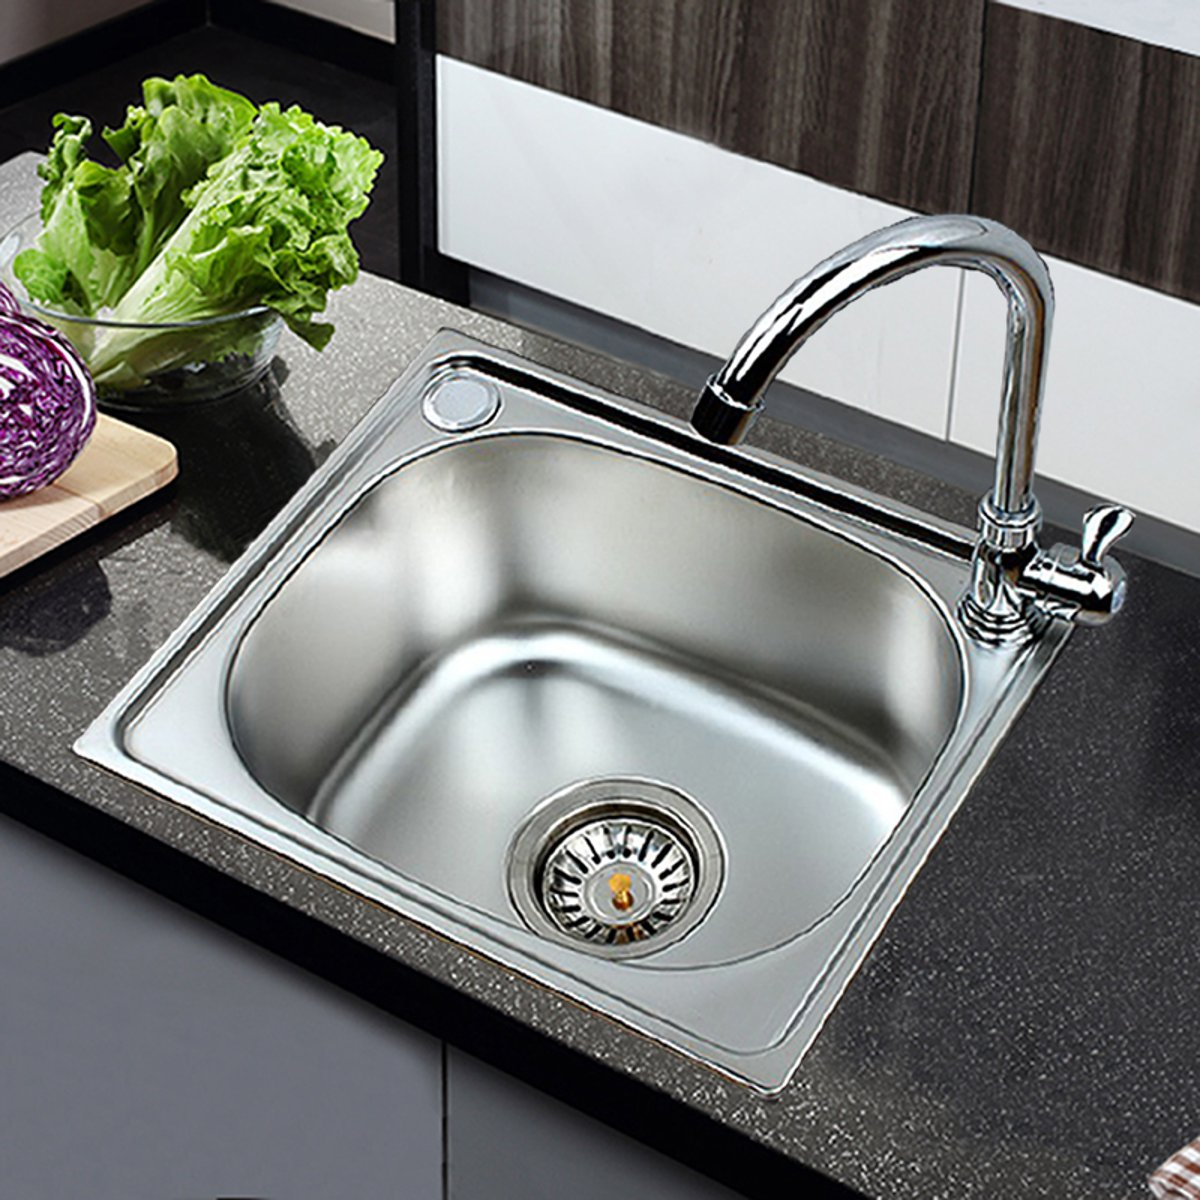 Kitchen Sink Washing-Basin Stainless Steel Inset Single Bowl Laundry Catering Topmount Square Drainer Vegetable Washing Basin